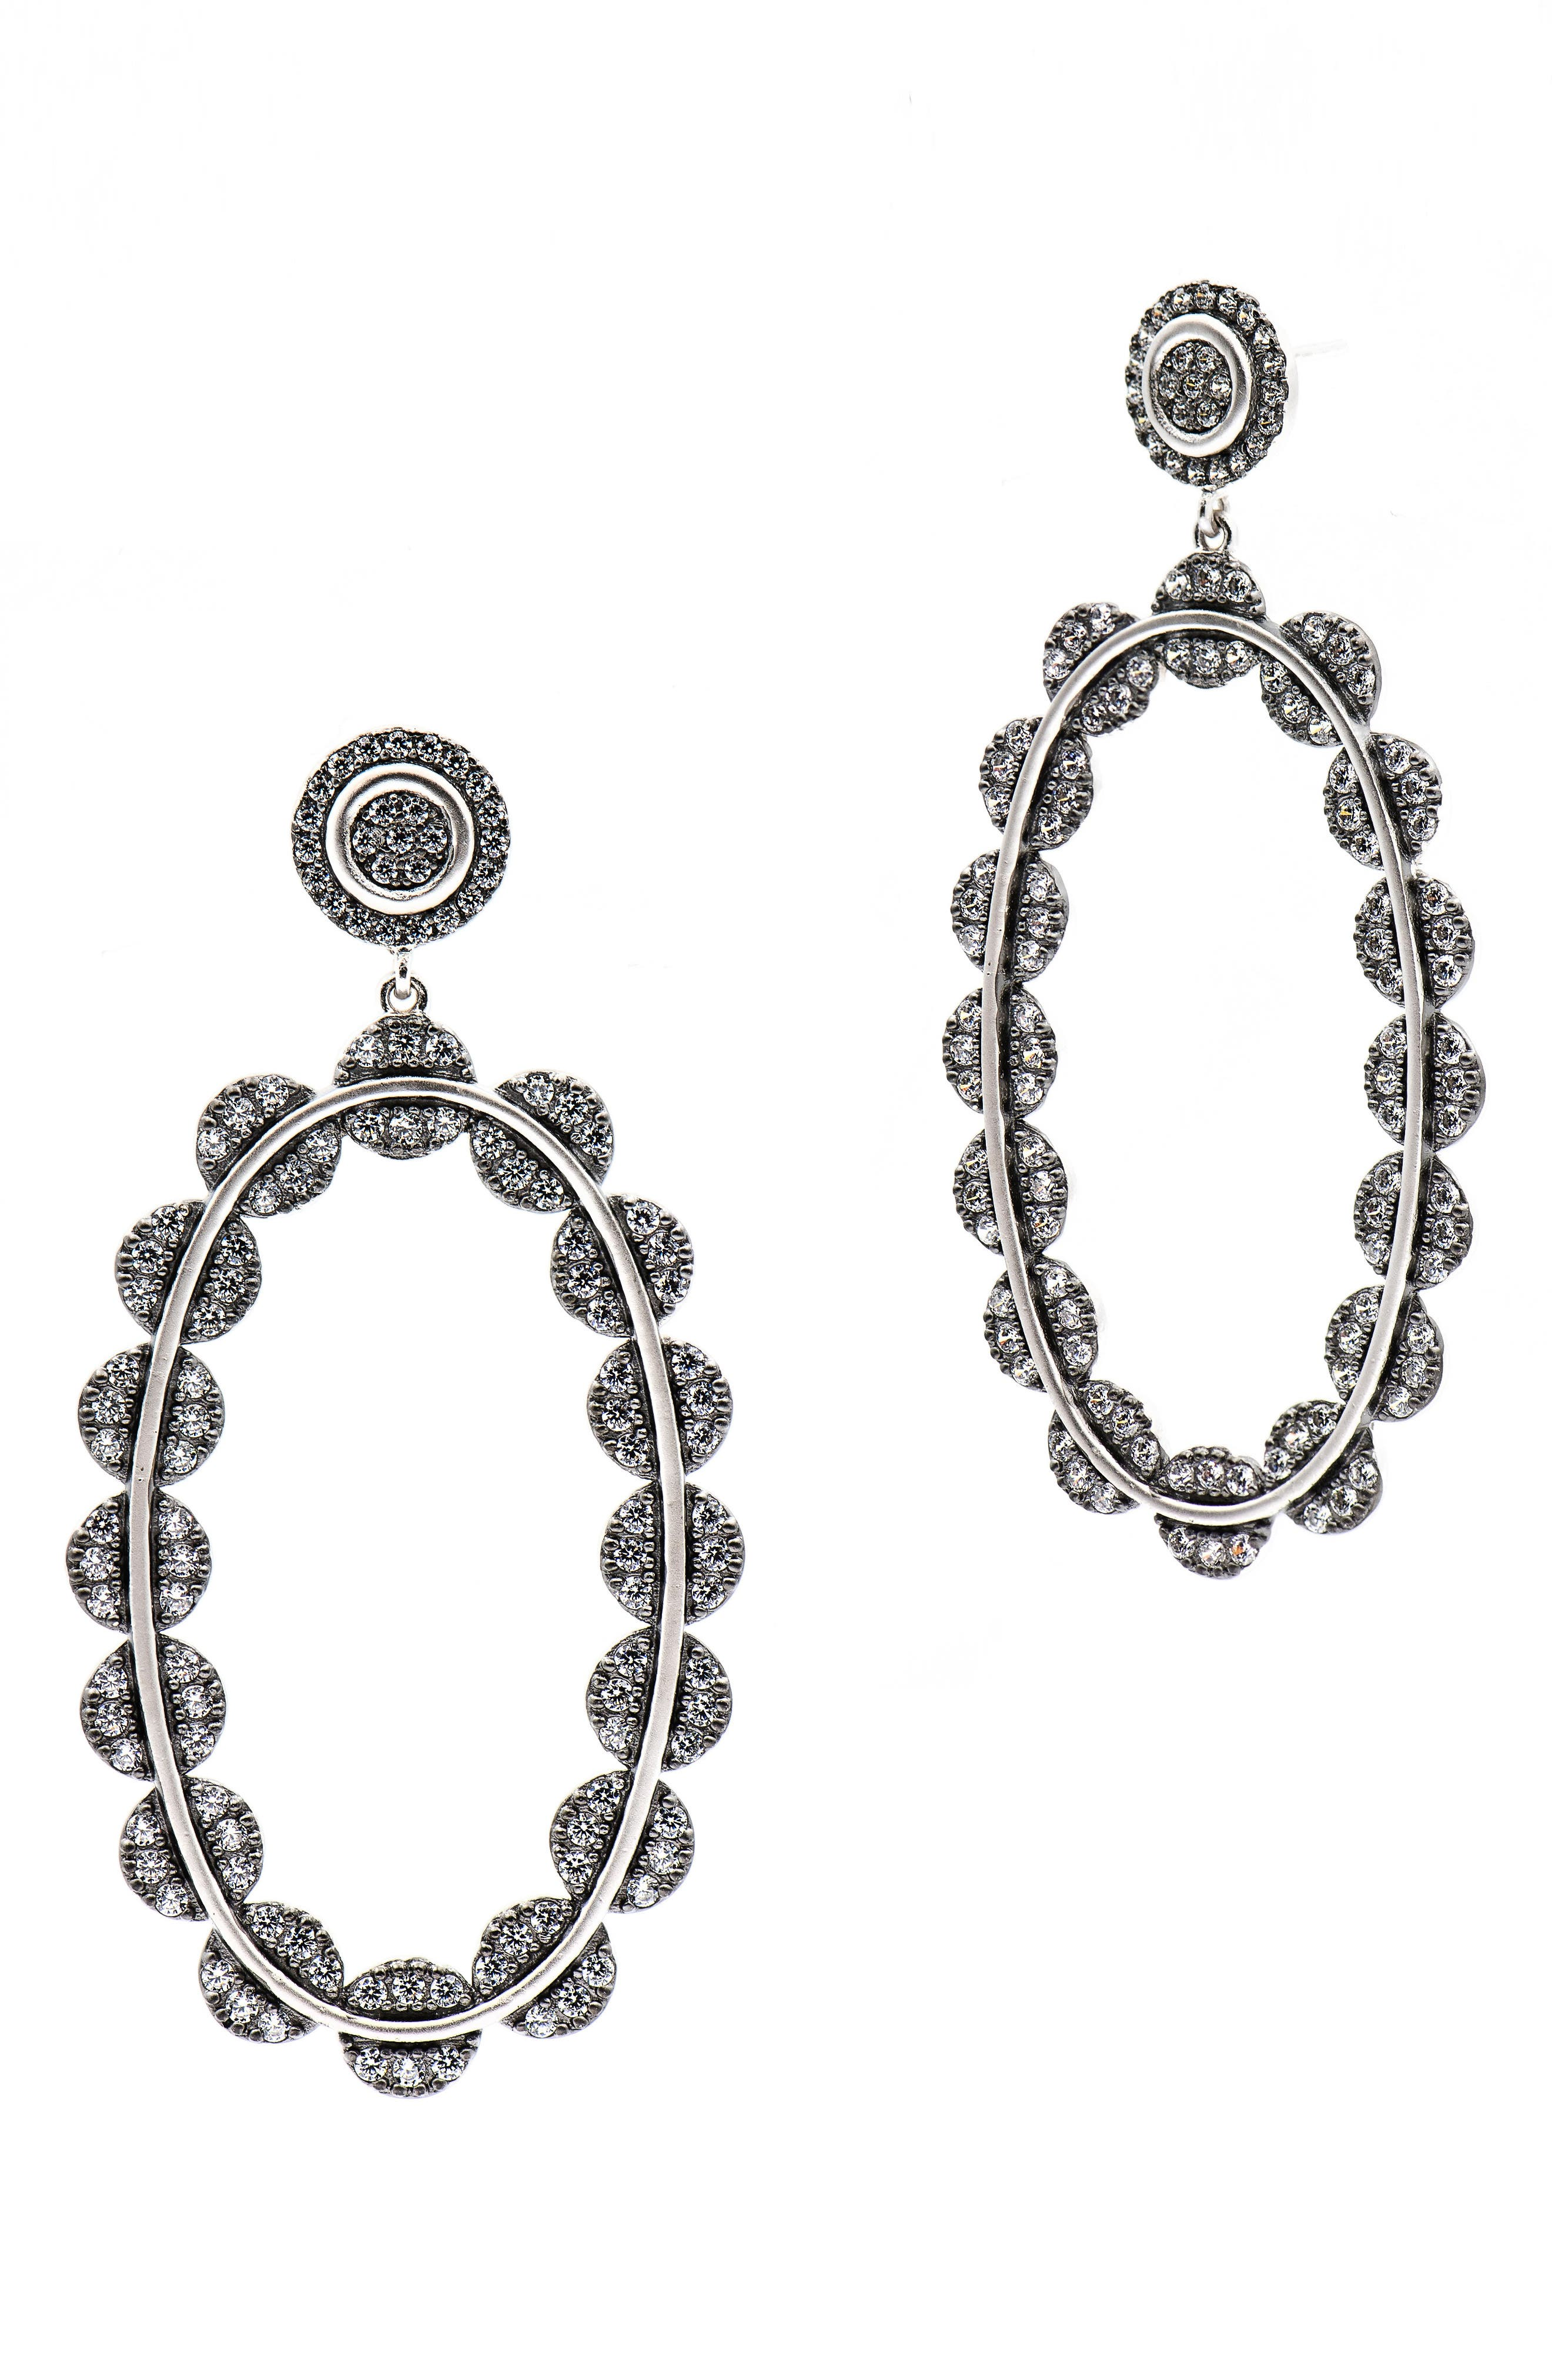 Cubic Zirconia Oval Drop Earrings,                             Main thumbnail 1, color,                             BLACK/ SILVER